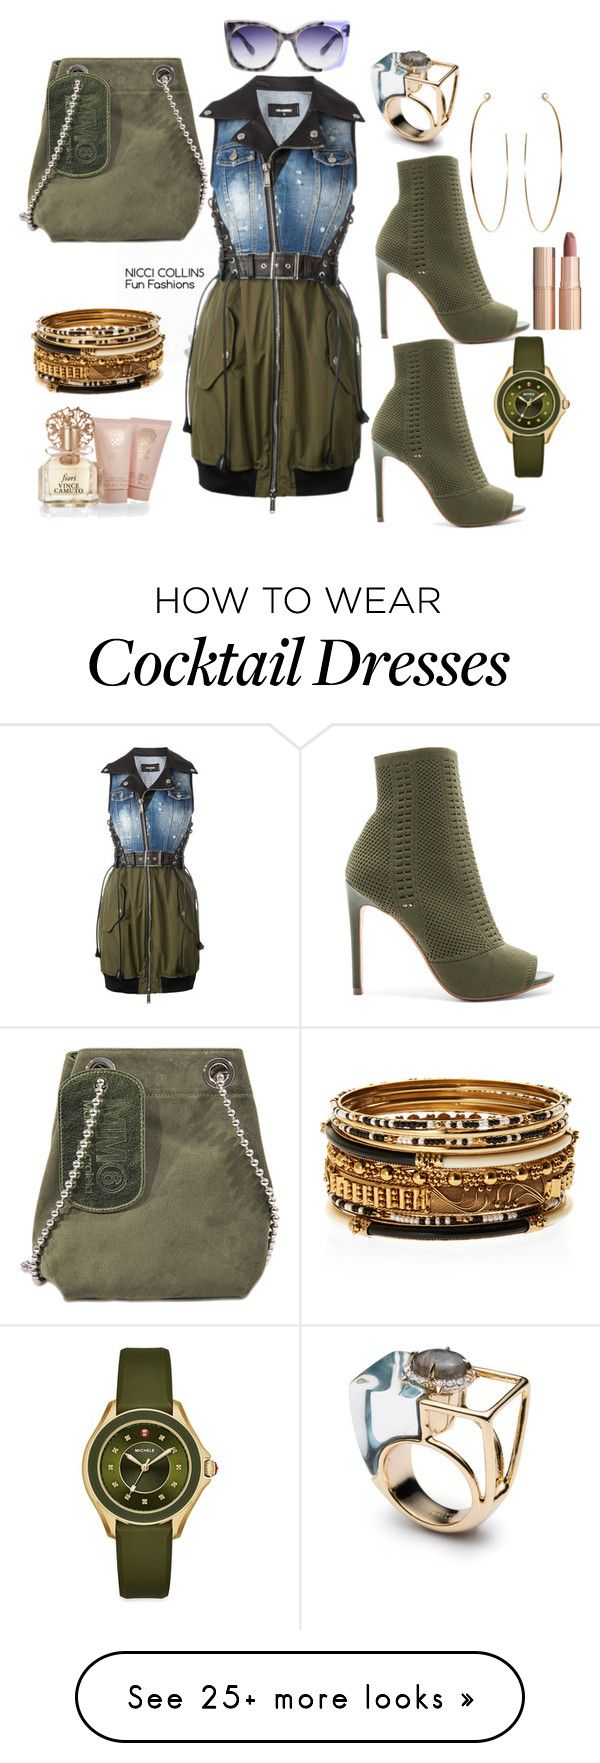 """Fun Fashion"" by niccicollins on Polyvore featuring Dsquared2, Steve Madden, Maison Margiela, Amrita Singh, Michele, Vince Camuto and Charlotte Tilbury"